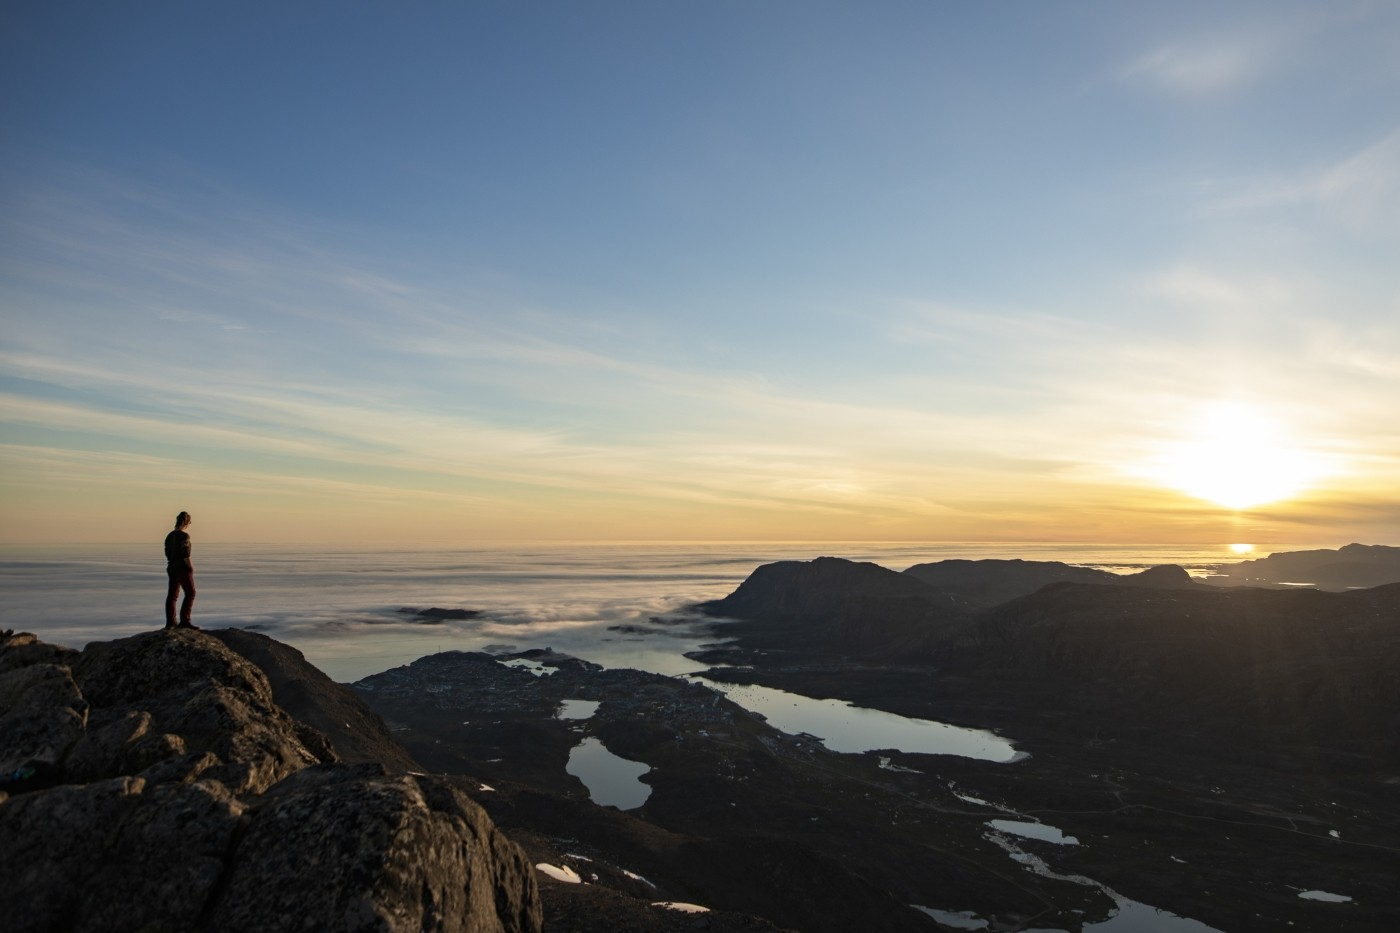 Stand above the clouds at mountain Nasaasaaq. Photo by Aningaaq R Carlsen - Visit Greenland